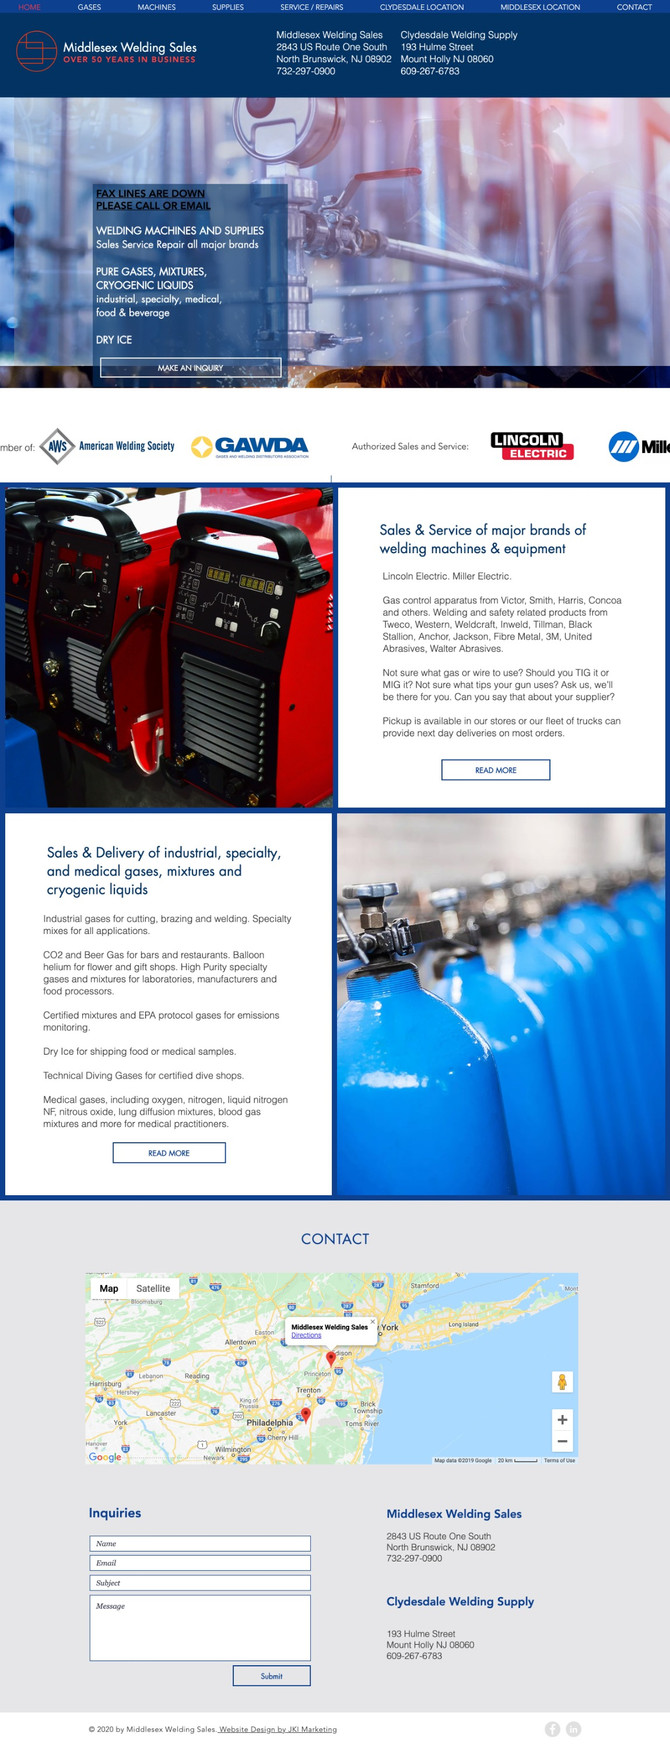 New Website Design for Middlesex Welding Sales